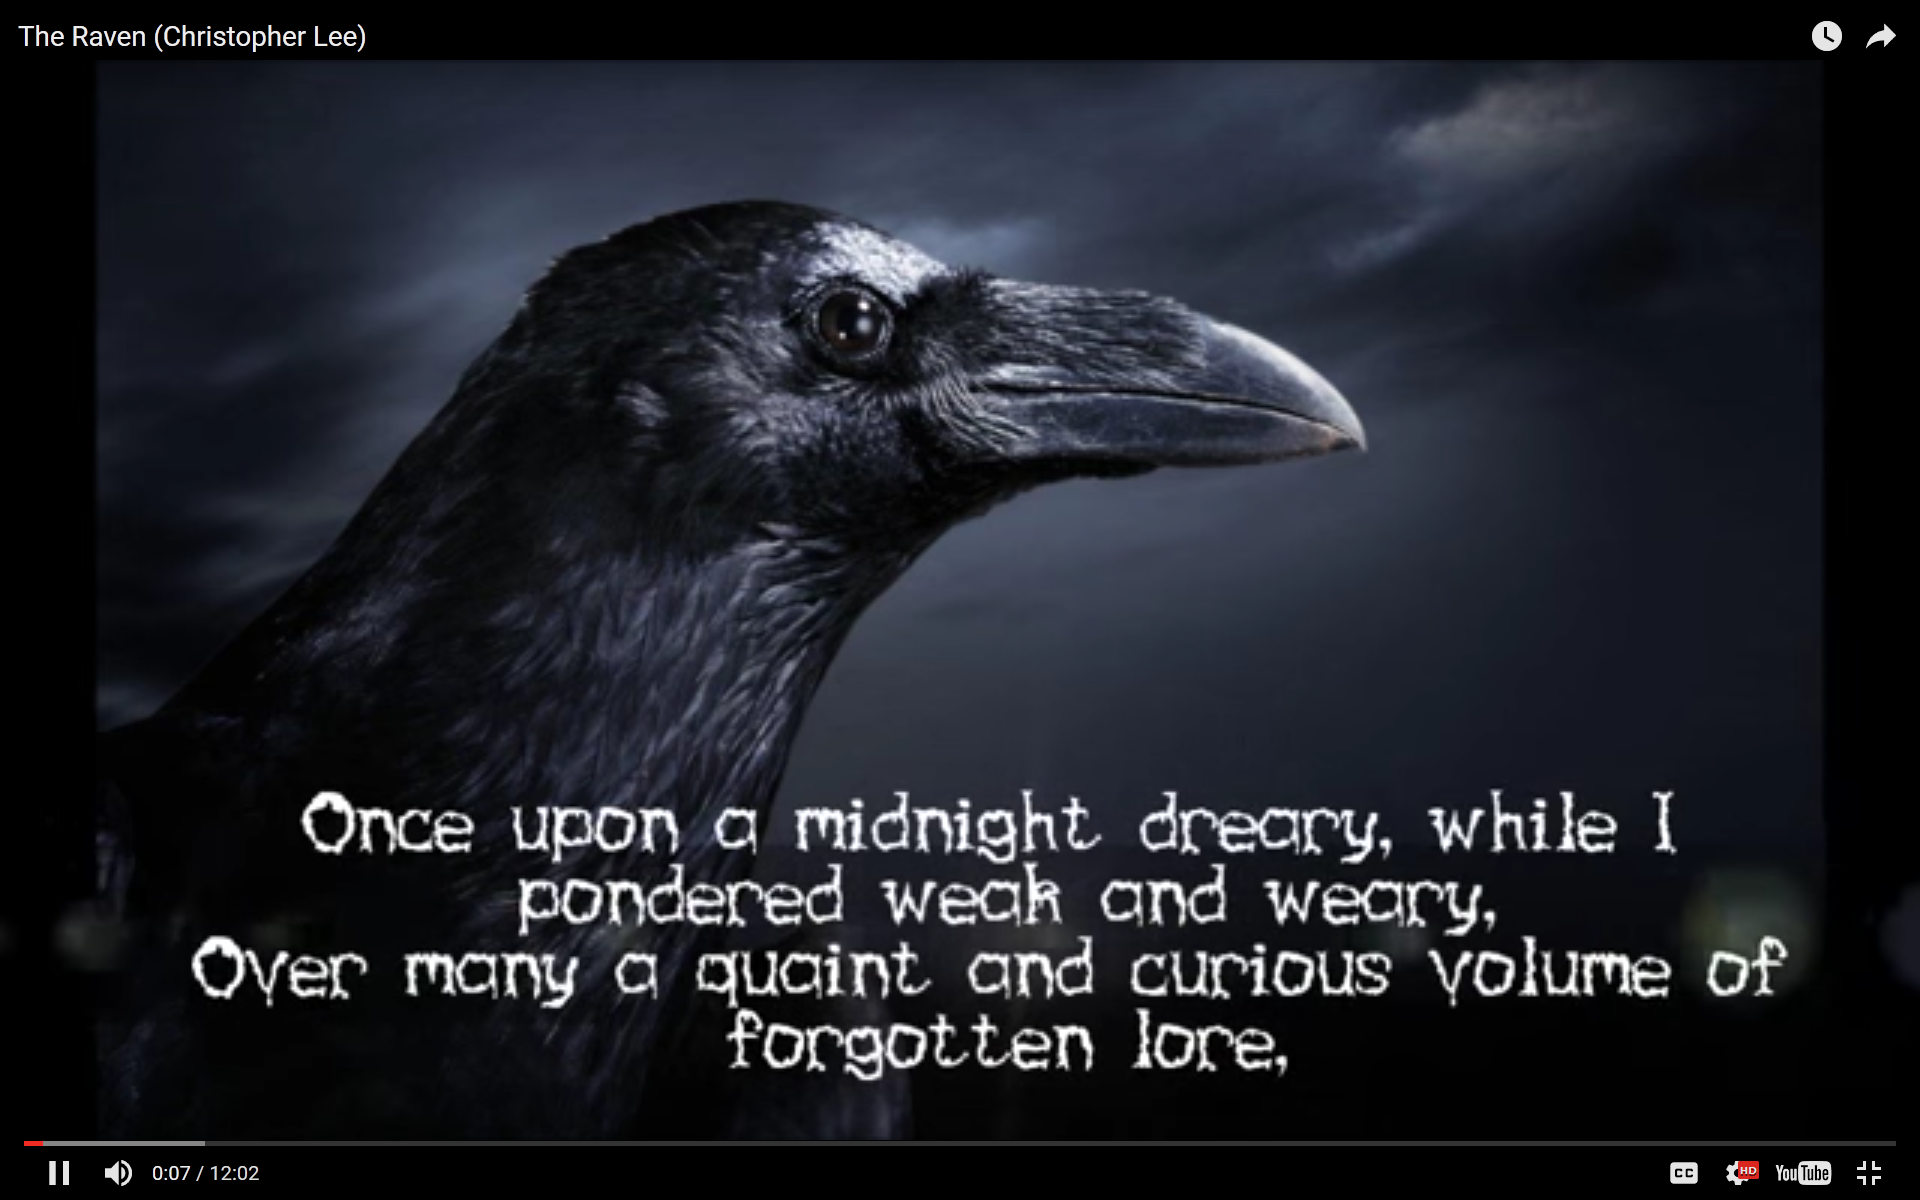 The raven by edgar allan poe oncoursesystems. Com pages 1 9.